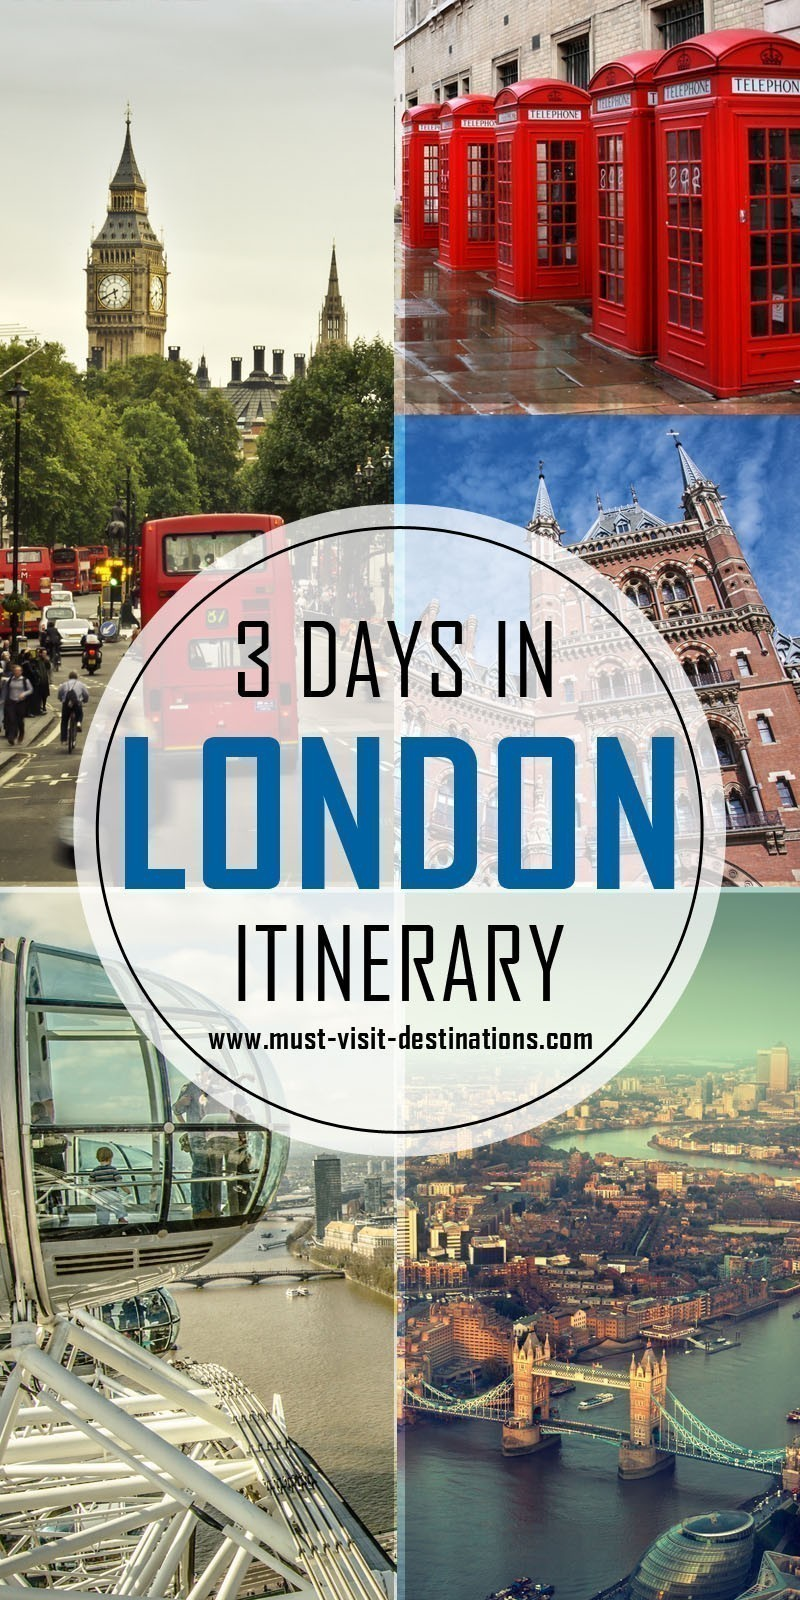 Only 3 days in London? No problem! Check out this sample itinerary! #must-visit #destination #london